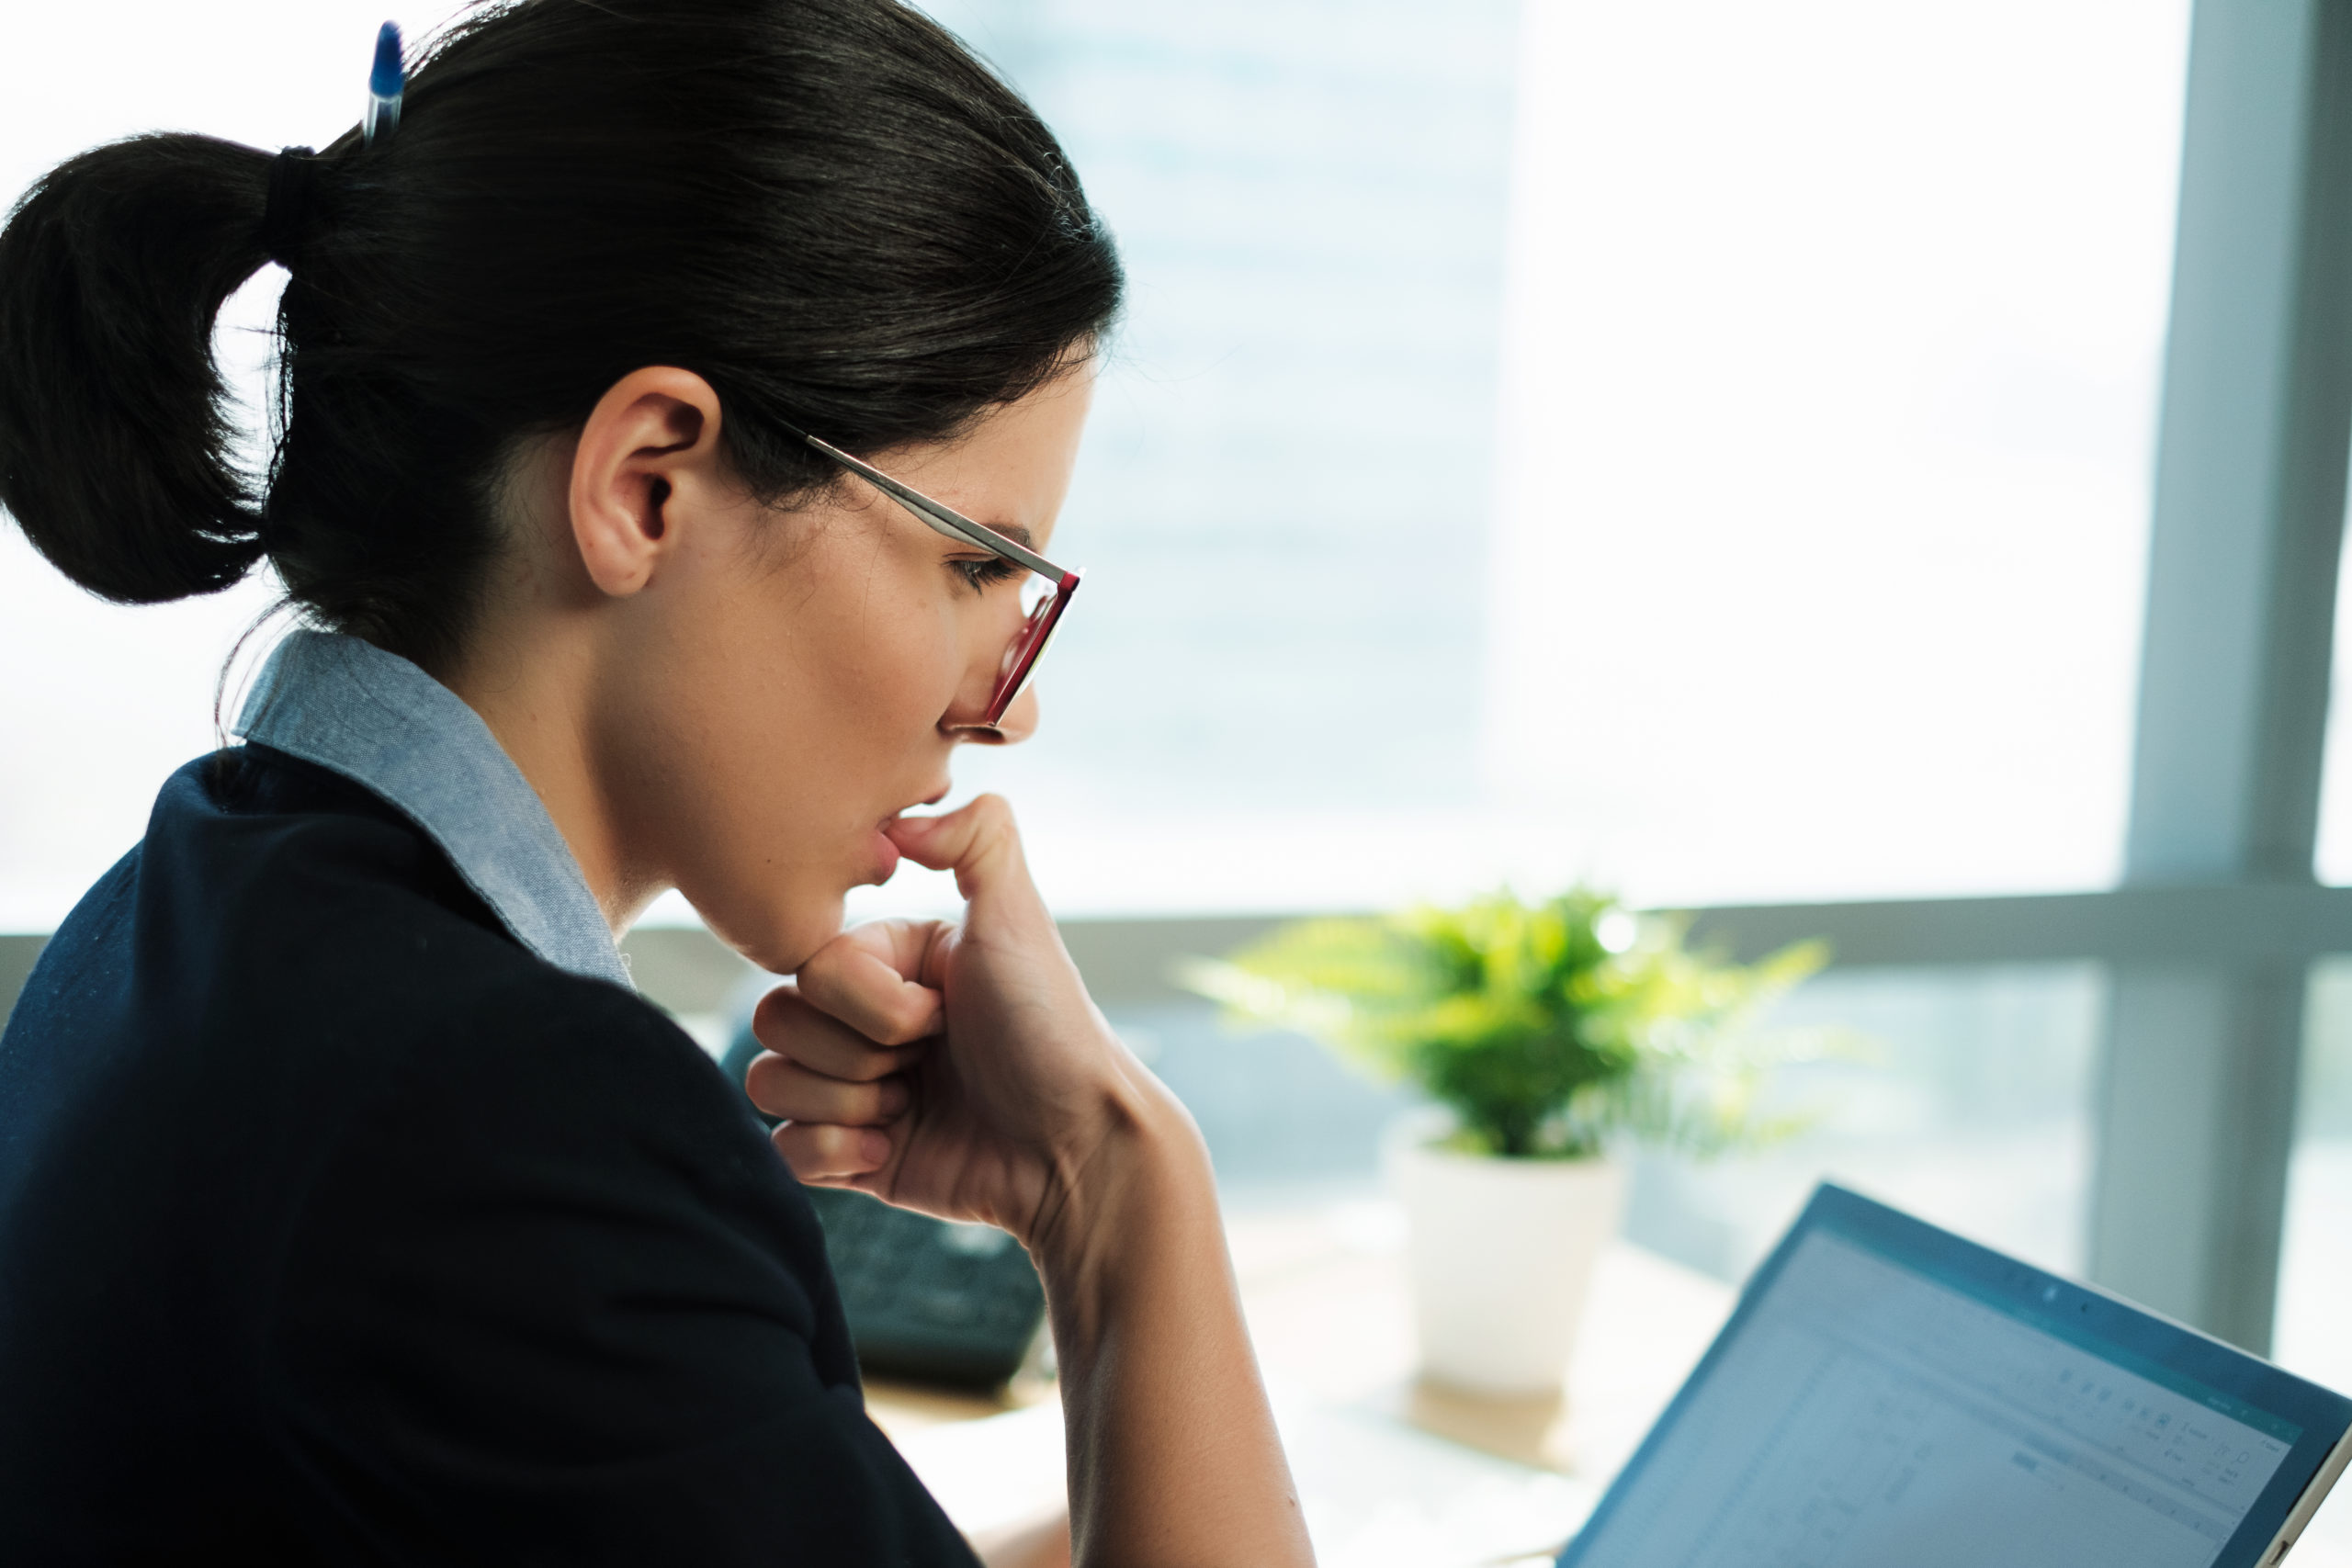 Bored business woman biting her nails at work while looking at a computer screen. Young nervous female executive worker with bad habits chewing on her fingernails while at the workplace. Side View